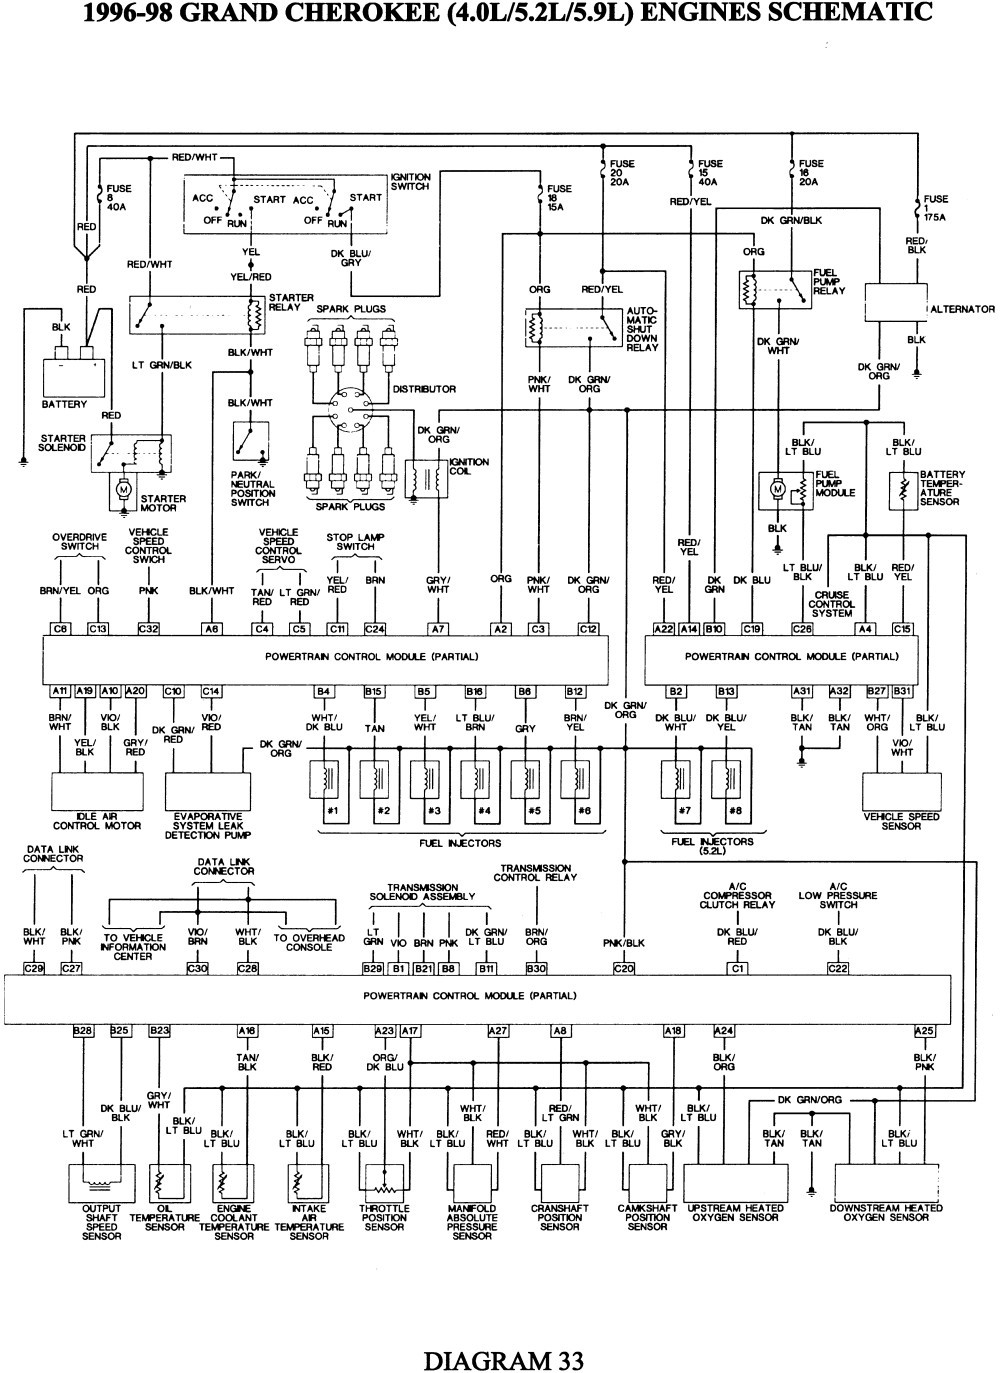 1998 jeep cherokee wiring diagram layout - wiring diagram high-digital-b -  high-digital-b.graniantichiumbri.it  graniantichiumbri.it